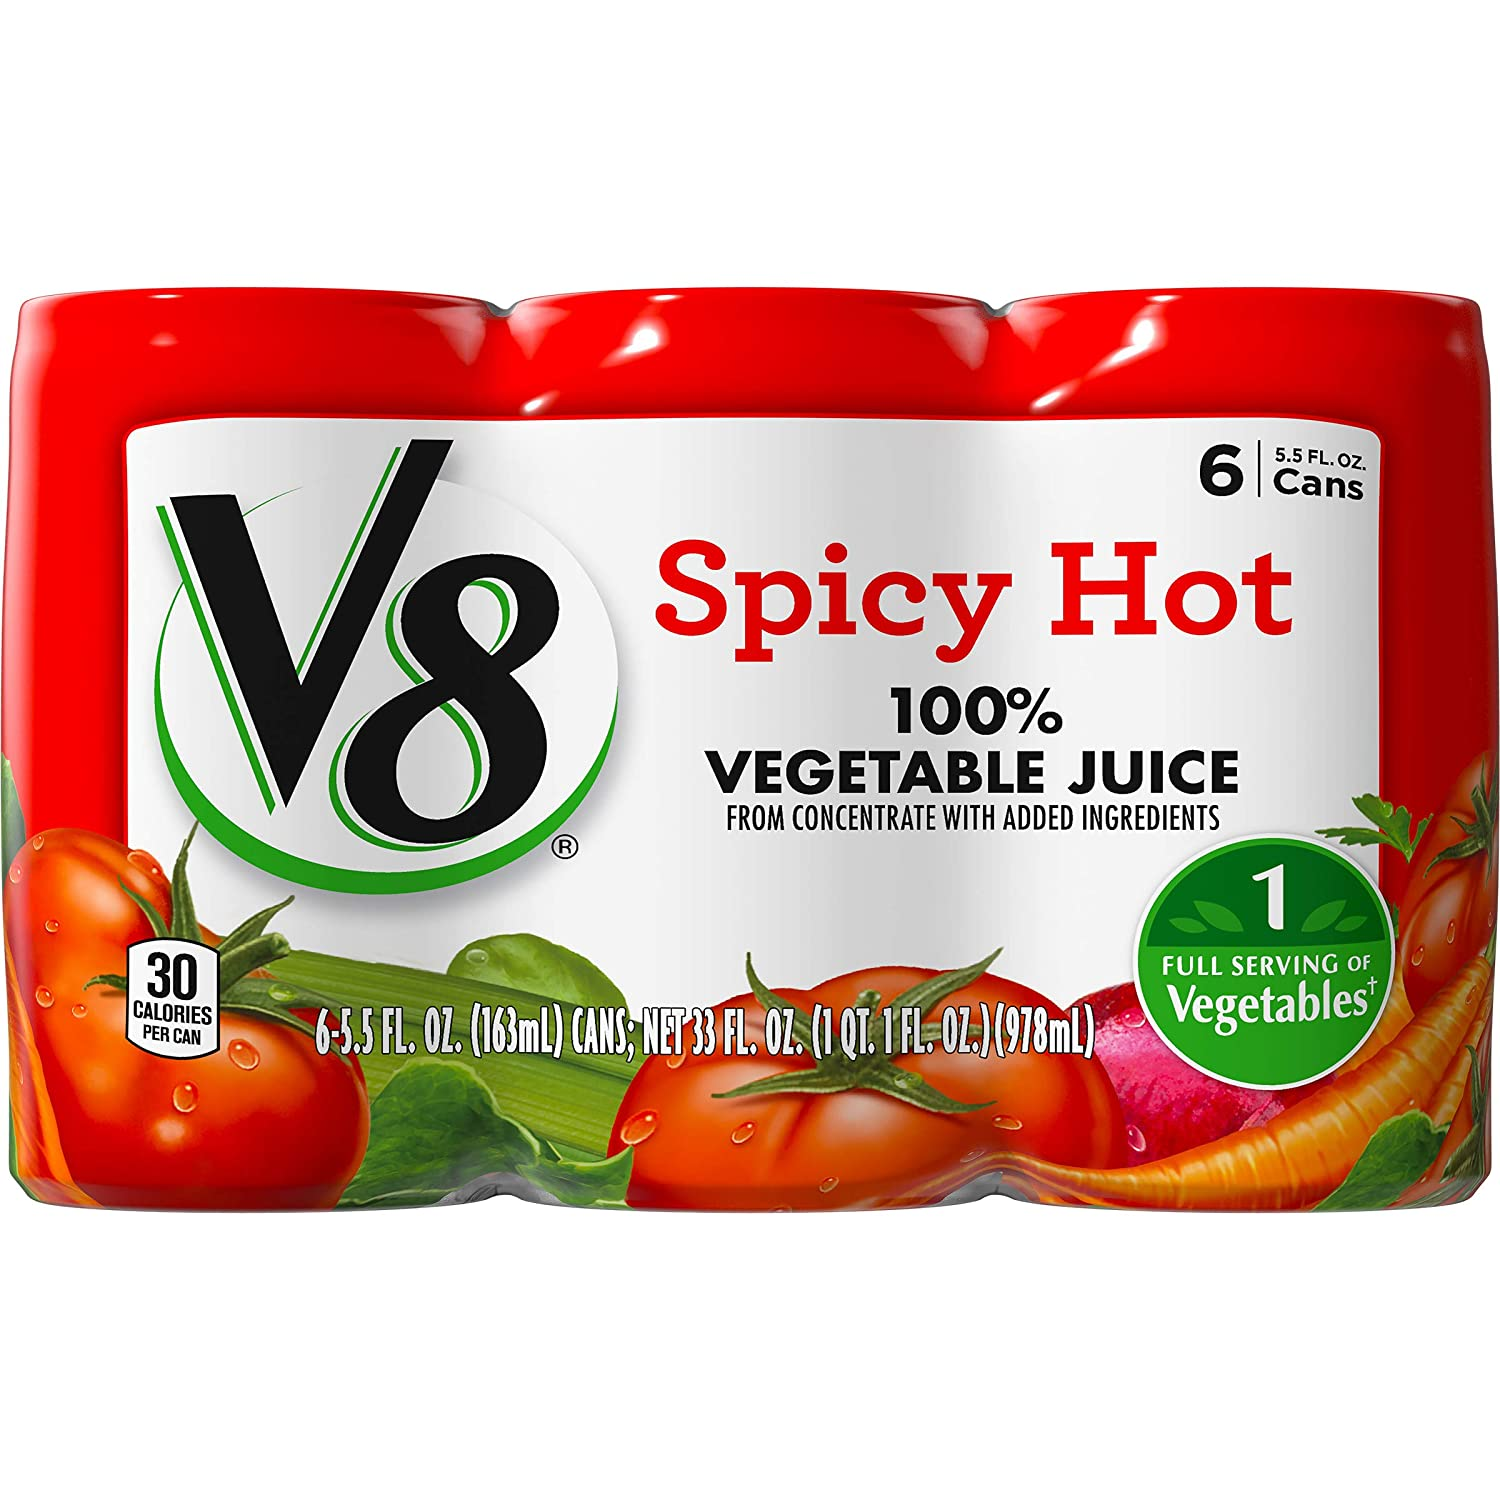 V8 Spicy Hot Nashville-Davidson Mall 100% Vegetable Juice 5.5 Pack oz. Can 6 of Count 2021 autumn and winter new